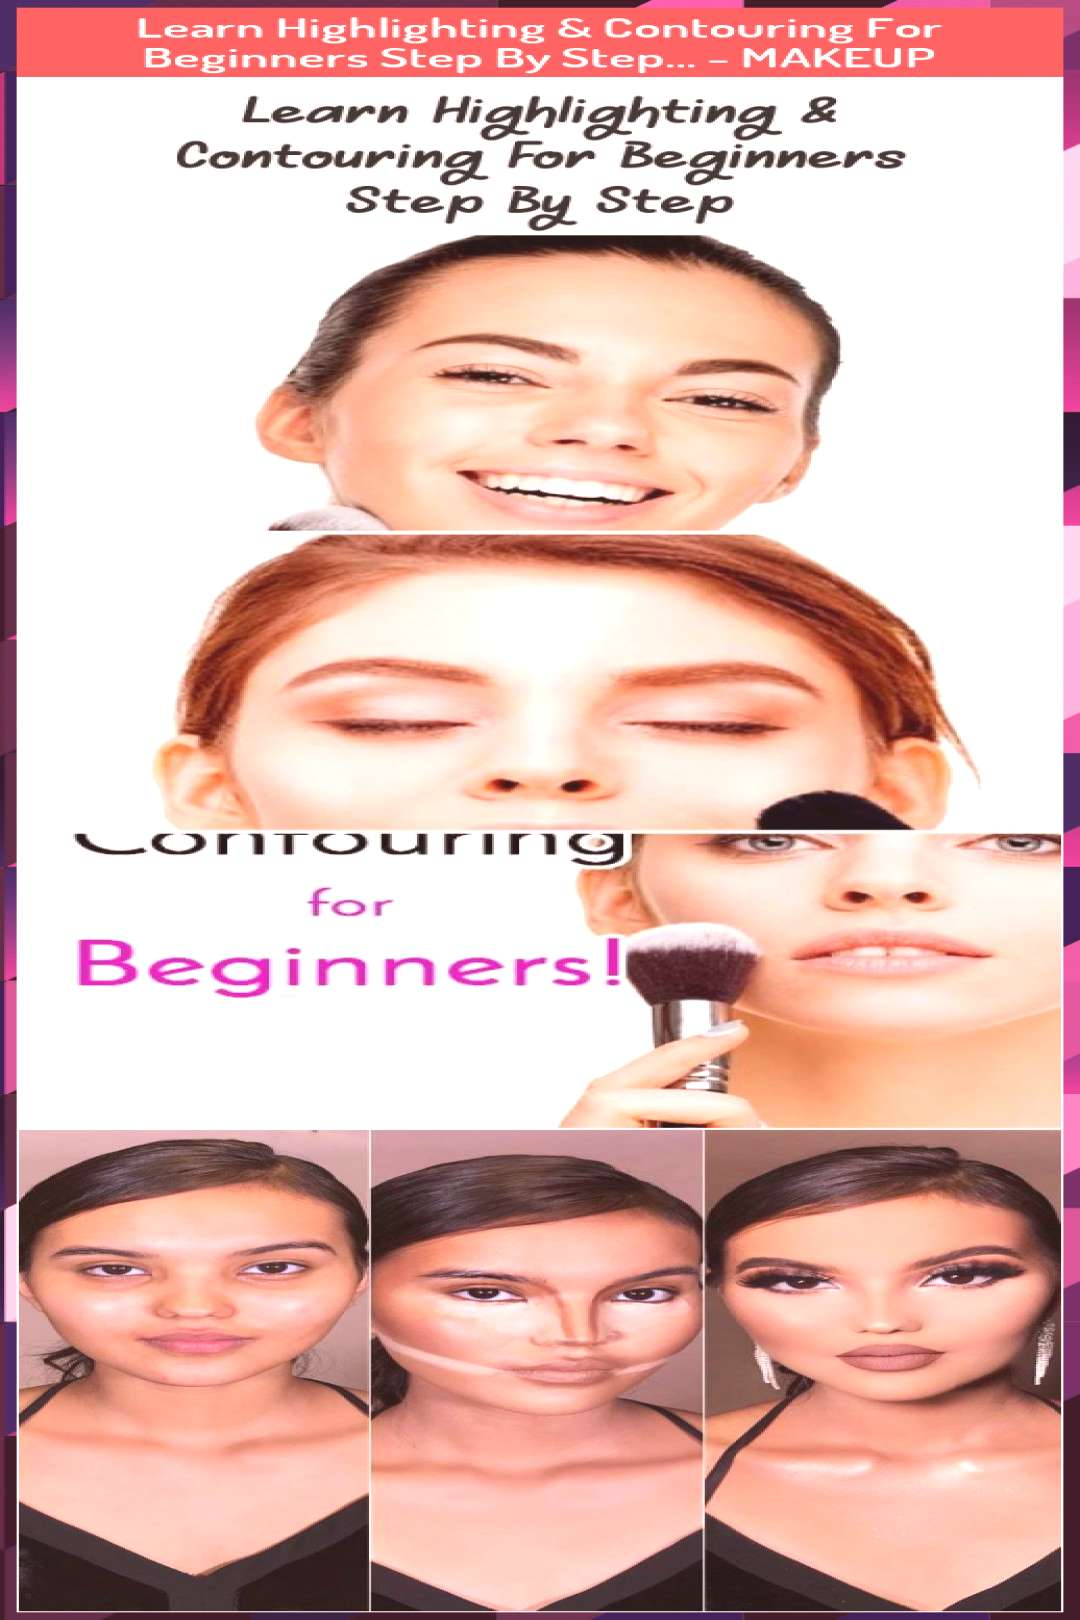 Learn Highlighting amp Contouring For Beginners Step By Step… - MAKEUP - Learn ...  Learn Highlig